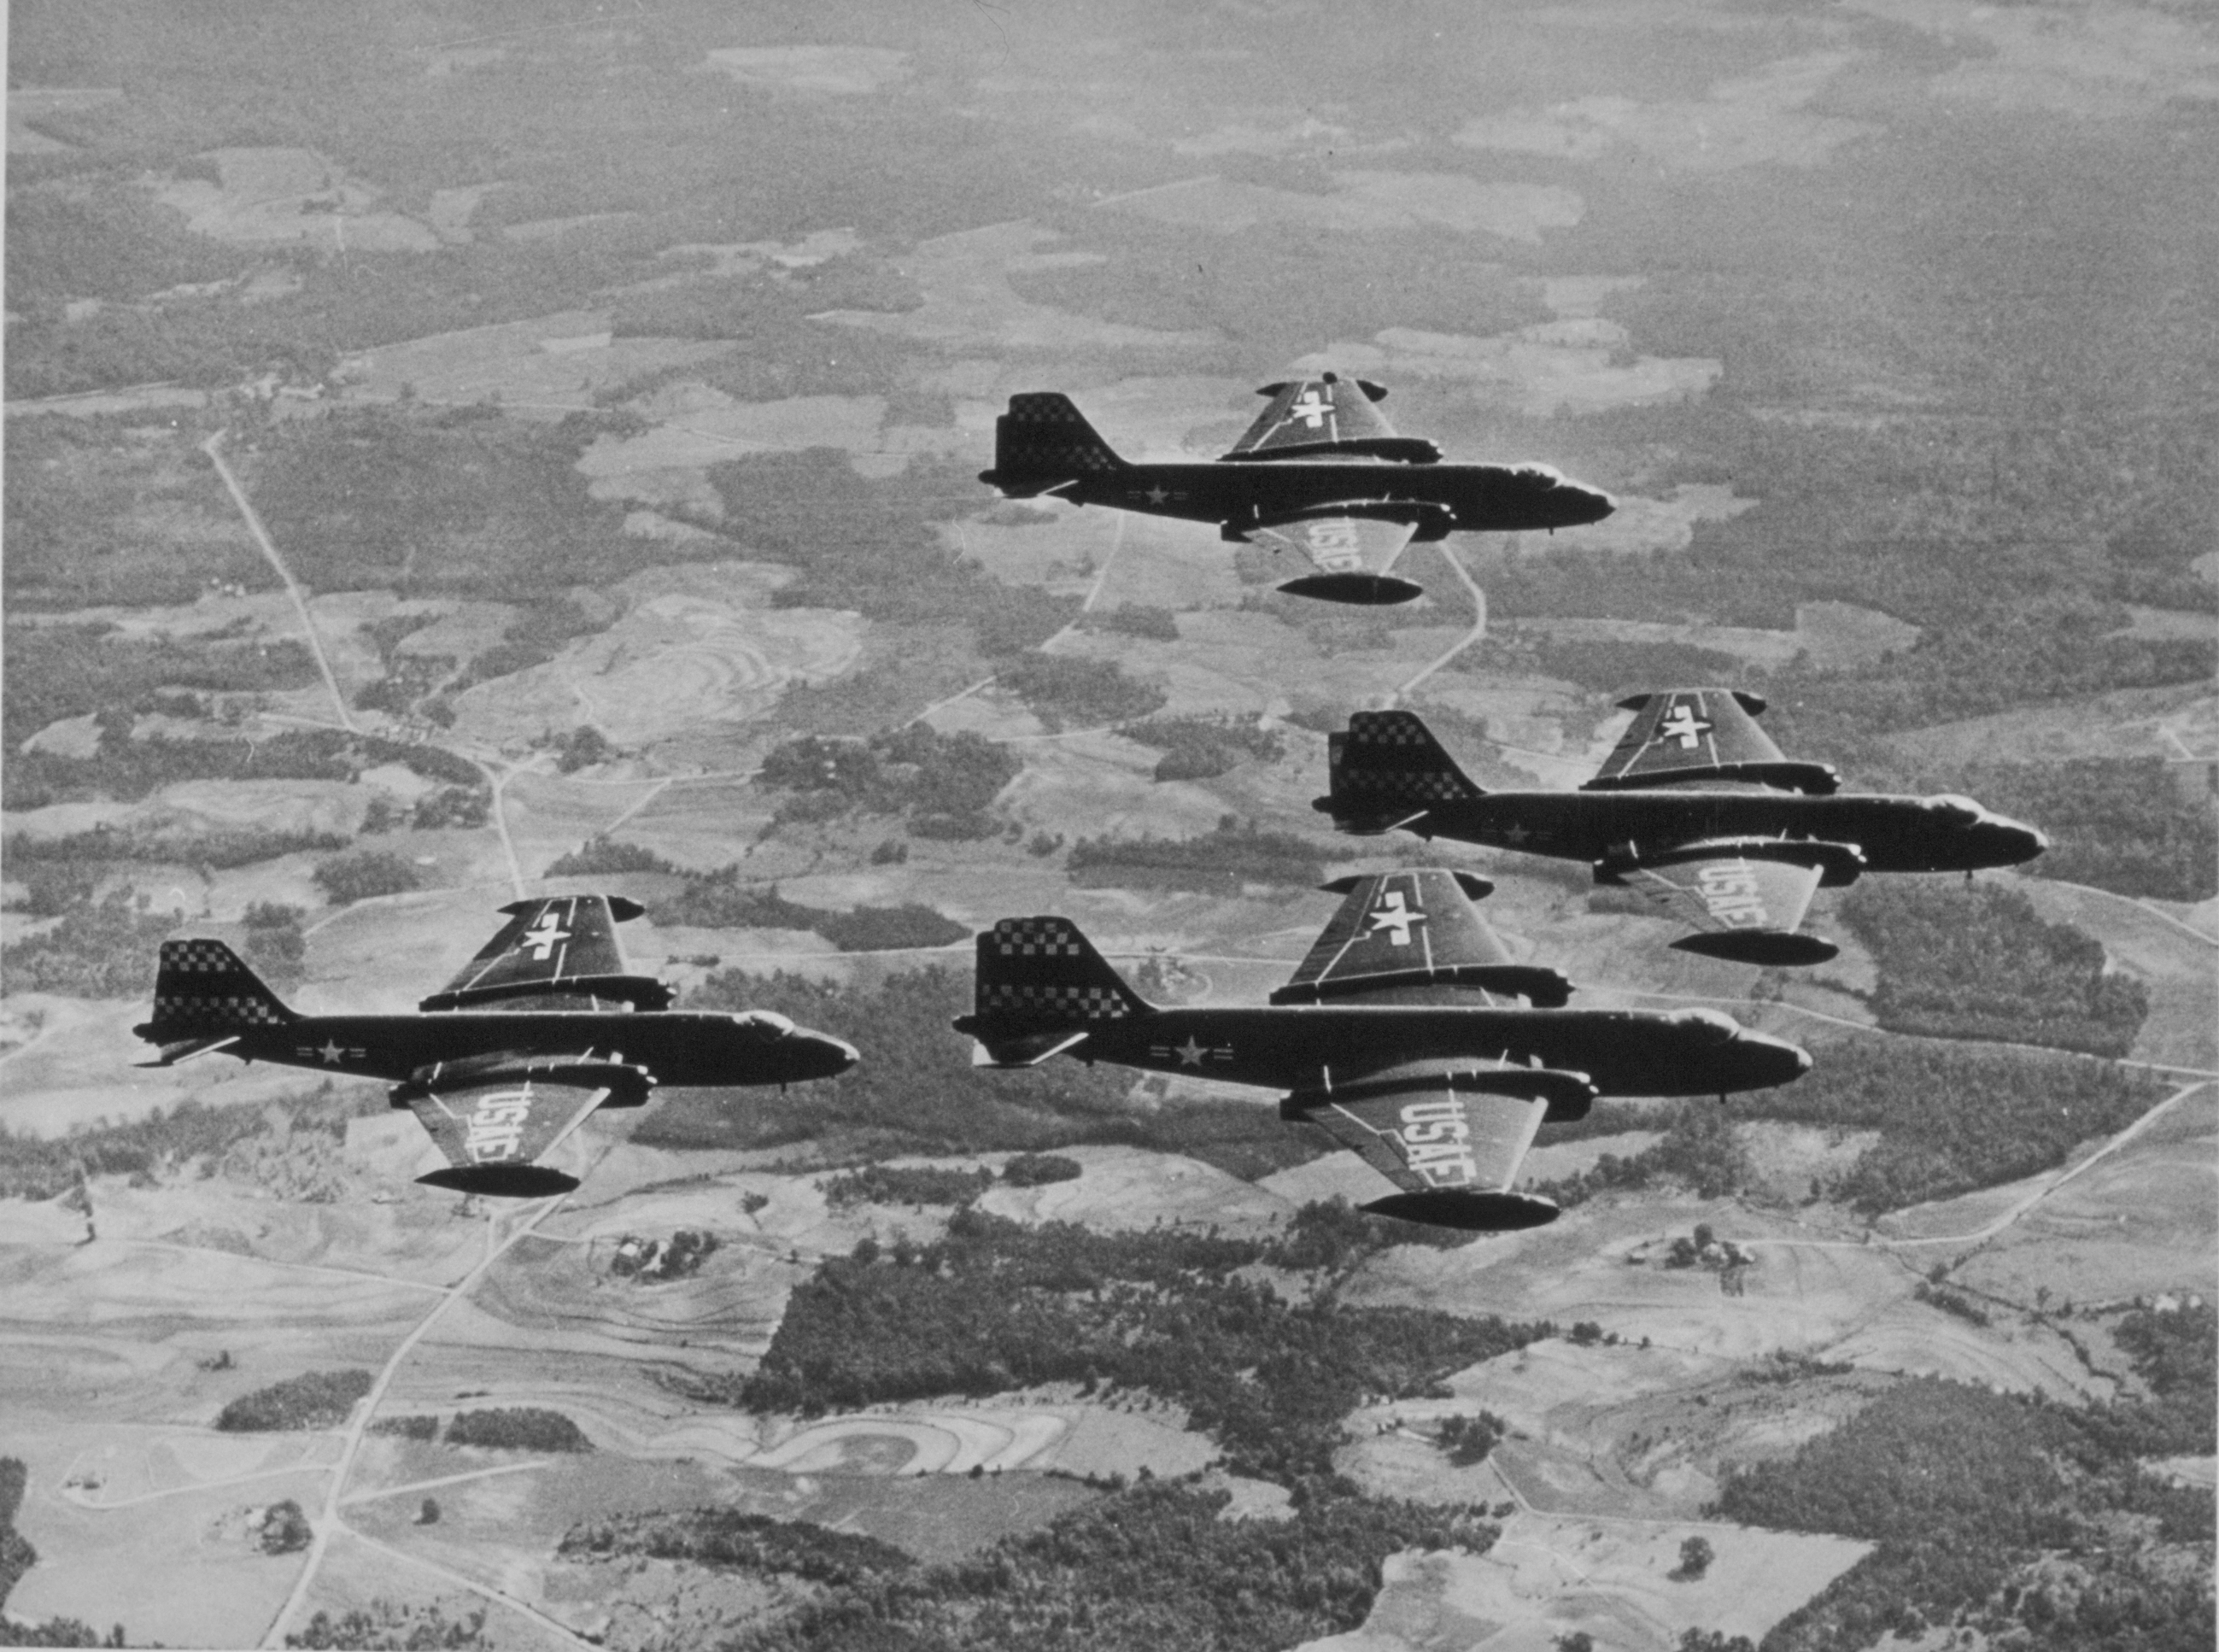 A formation flight of four RB-57A Canberras from Shaw Air Force Base in California. Sixty-eight of the 75 B-57As were built in the RB-57A tactical reconnaissance configuration, with the remainder delivered as B-57A bombers.